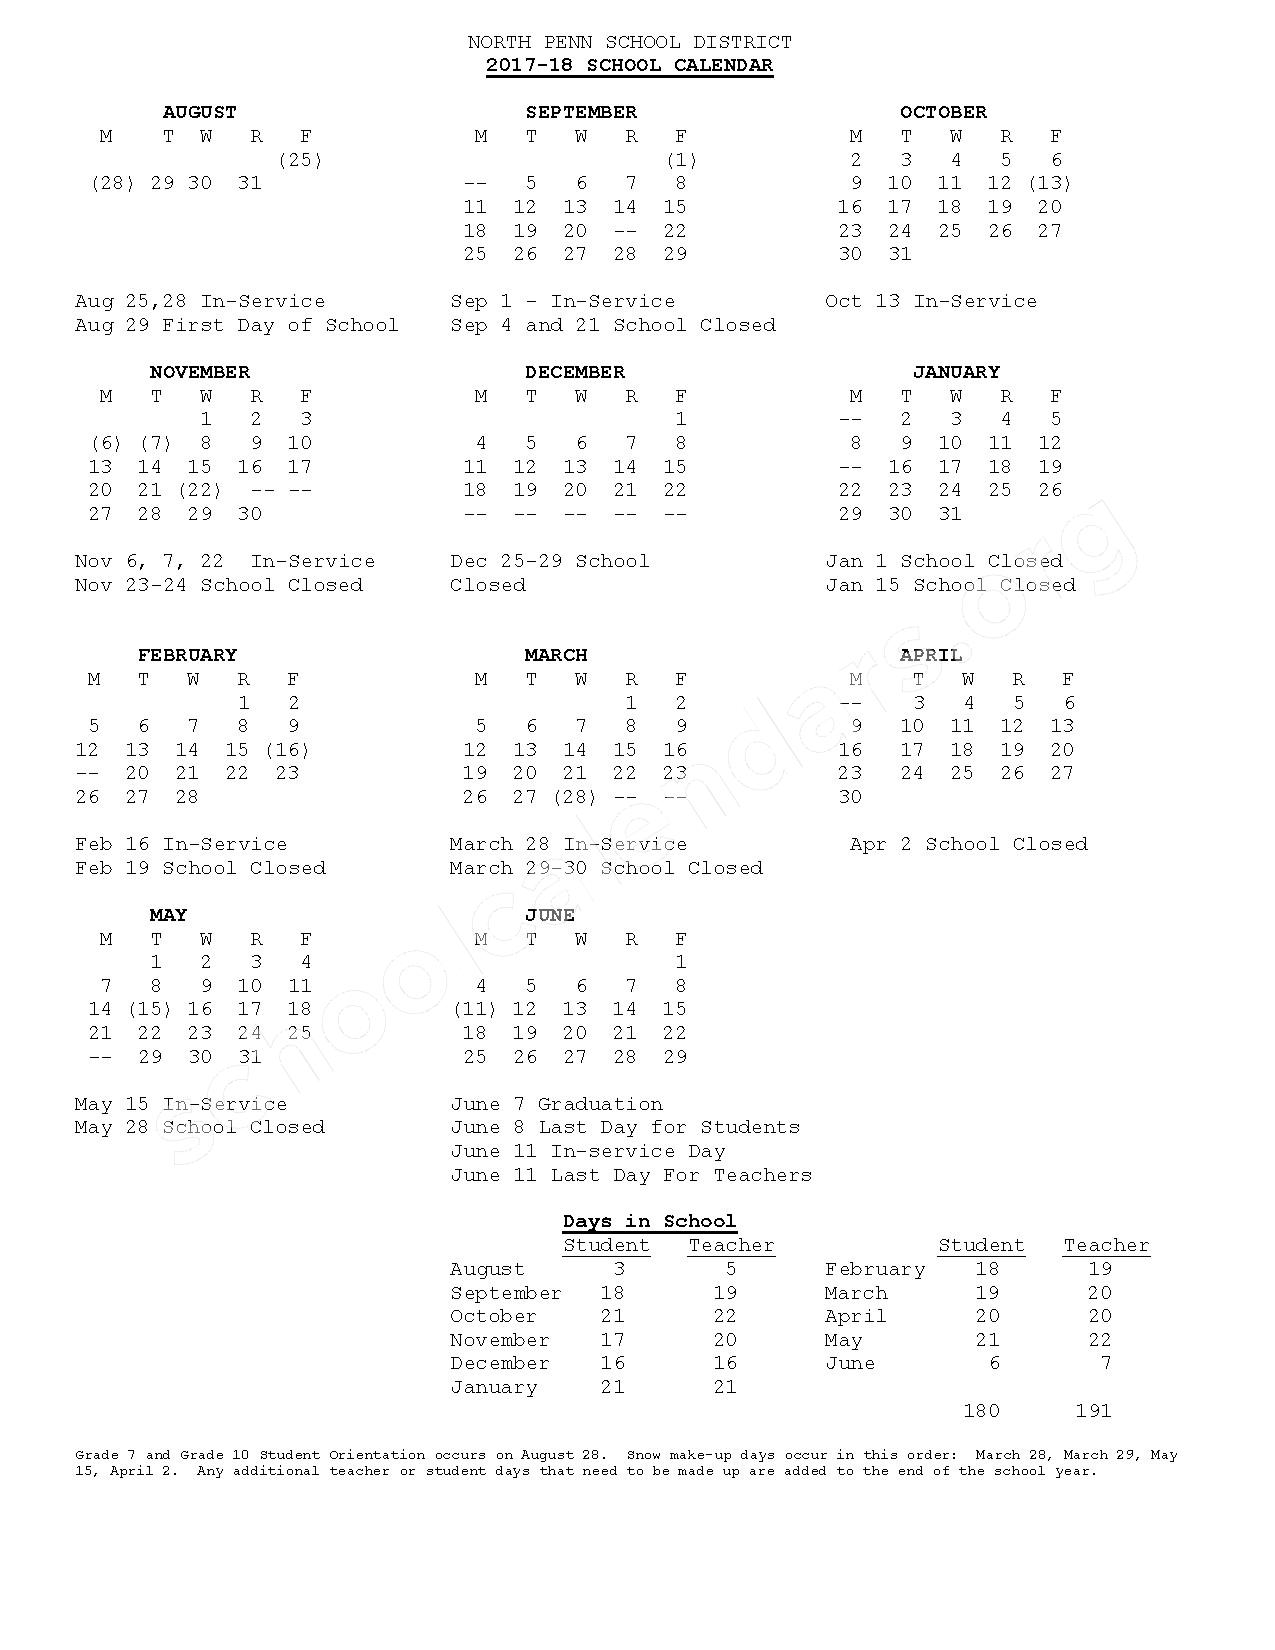 2017 - 2018 School Calendar – North Penn Senior High School – page 1